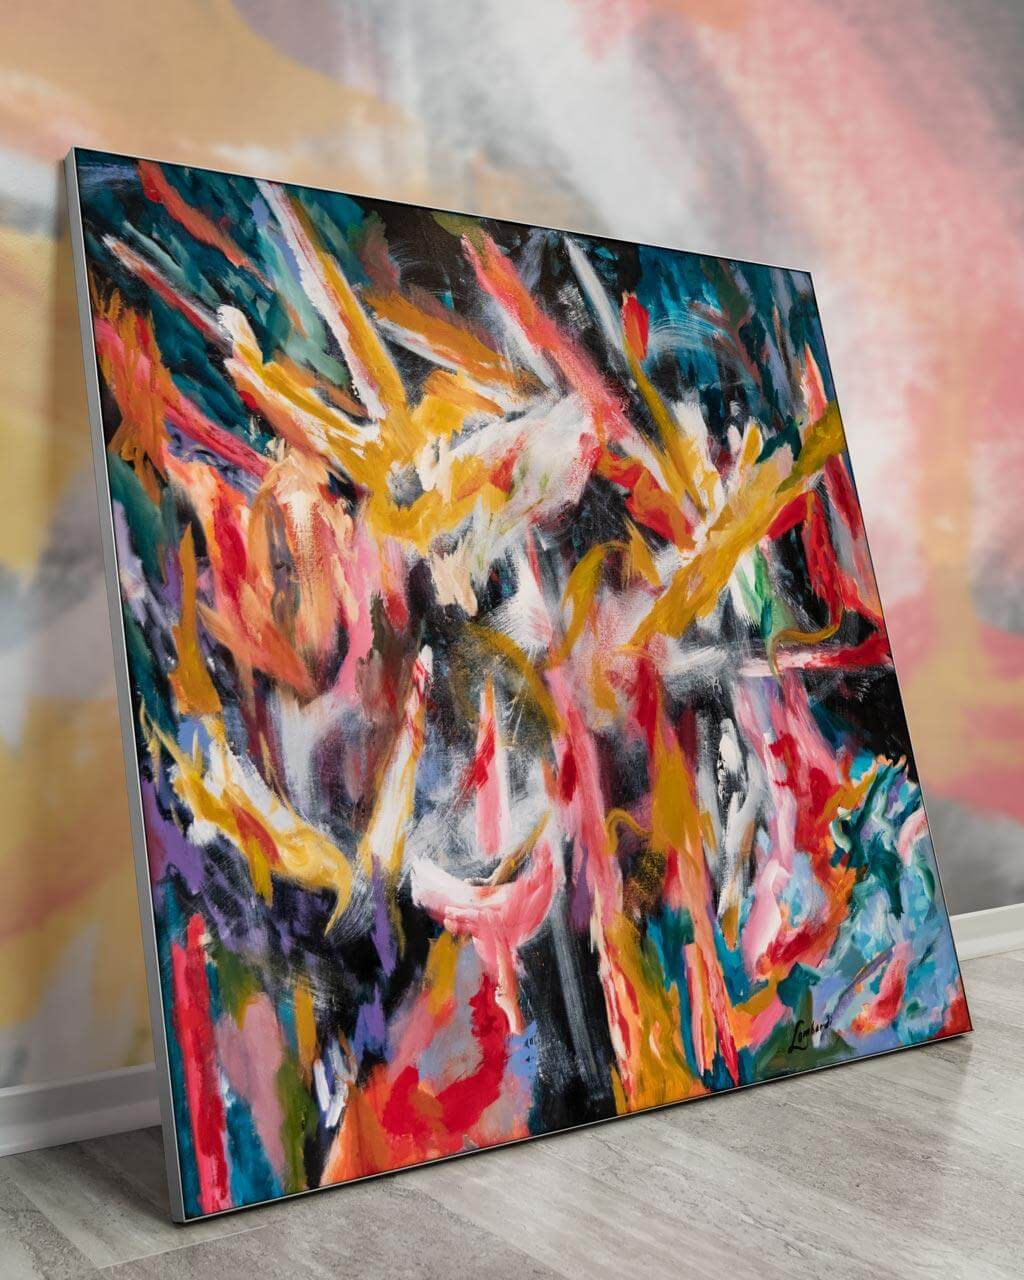 Largest Wall Art Painting Biggest Massive Huge Large Big Giant Gigantic Wall Décor Art Backlit Fabric Home Deco Artwork Artist Painting Bob Lombardi Instagram Abstract Paint Bright Colorful